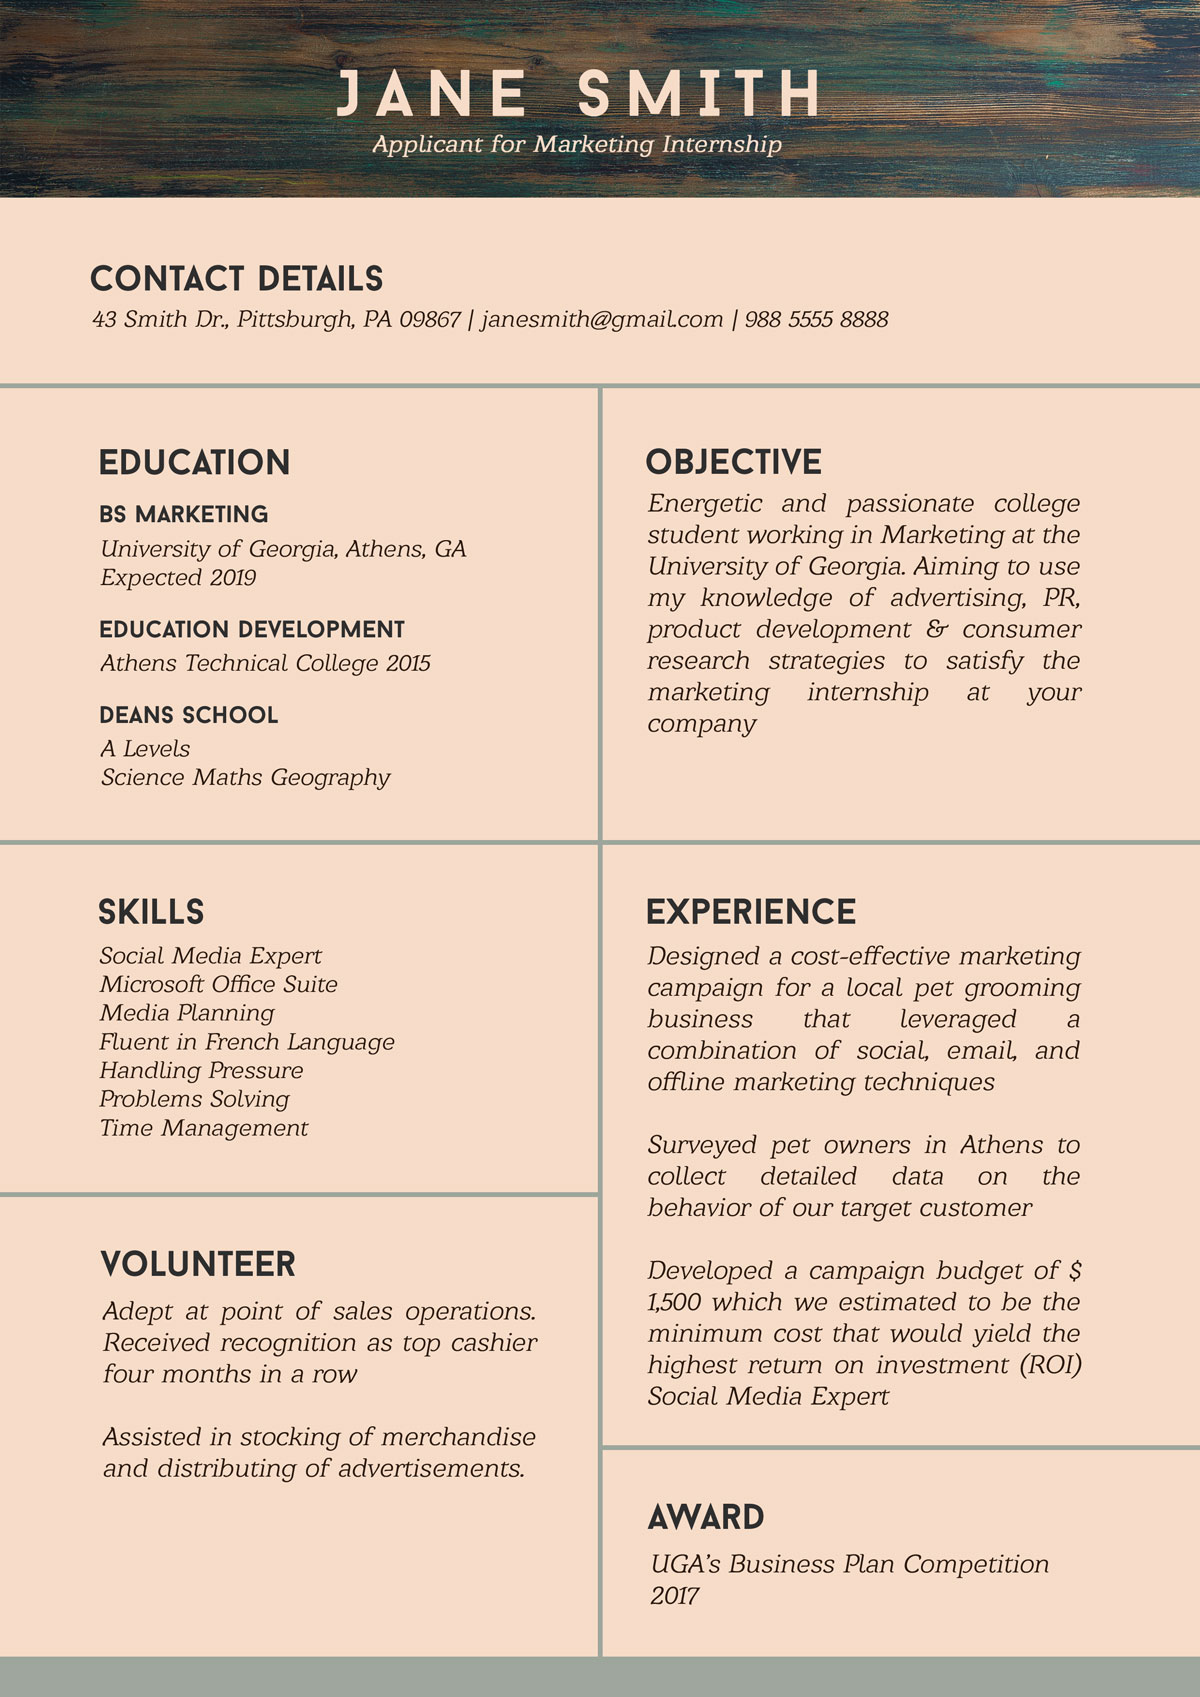 free resume template for internship student with no experience designbolts sample stoke Resume Free Resume Sample Stoke Machandise